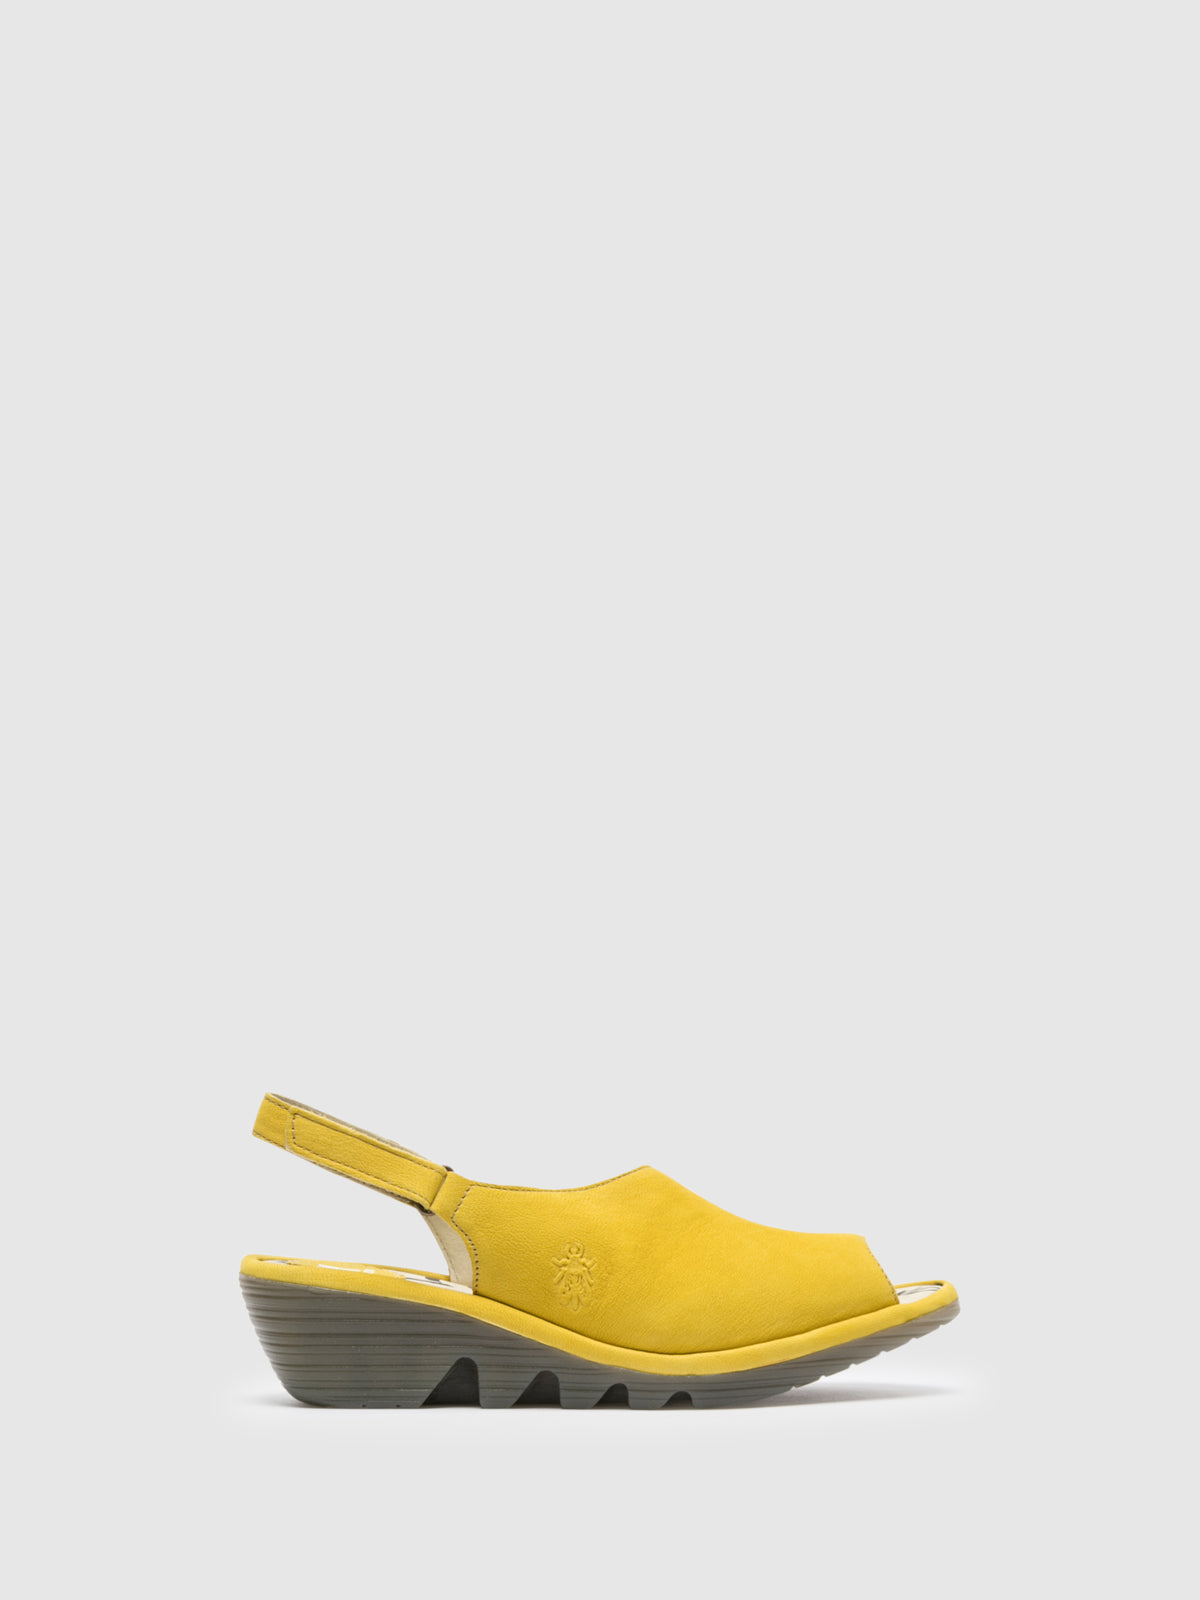 Fly London Sandalias con Cierre Autoadherente en color Amarillo Claro